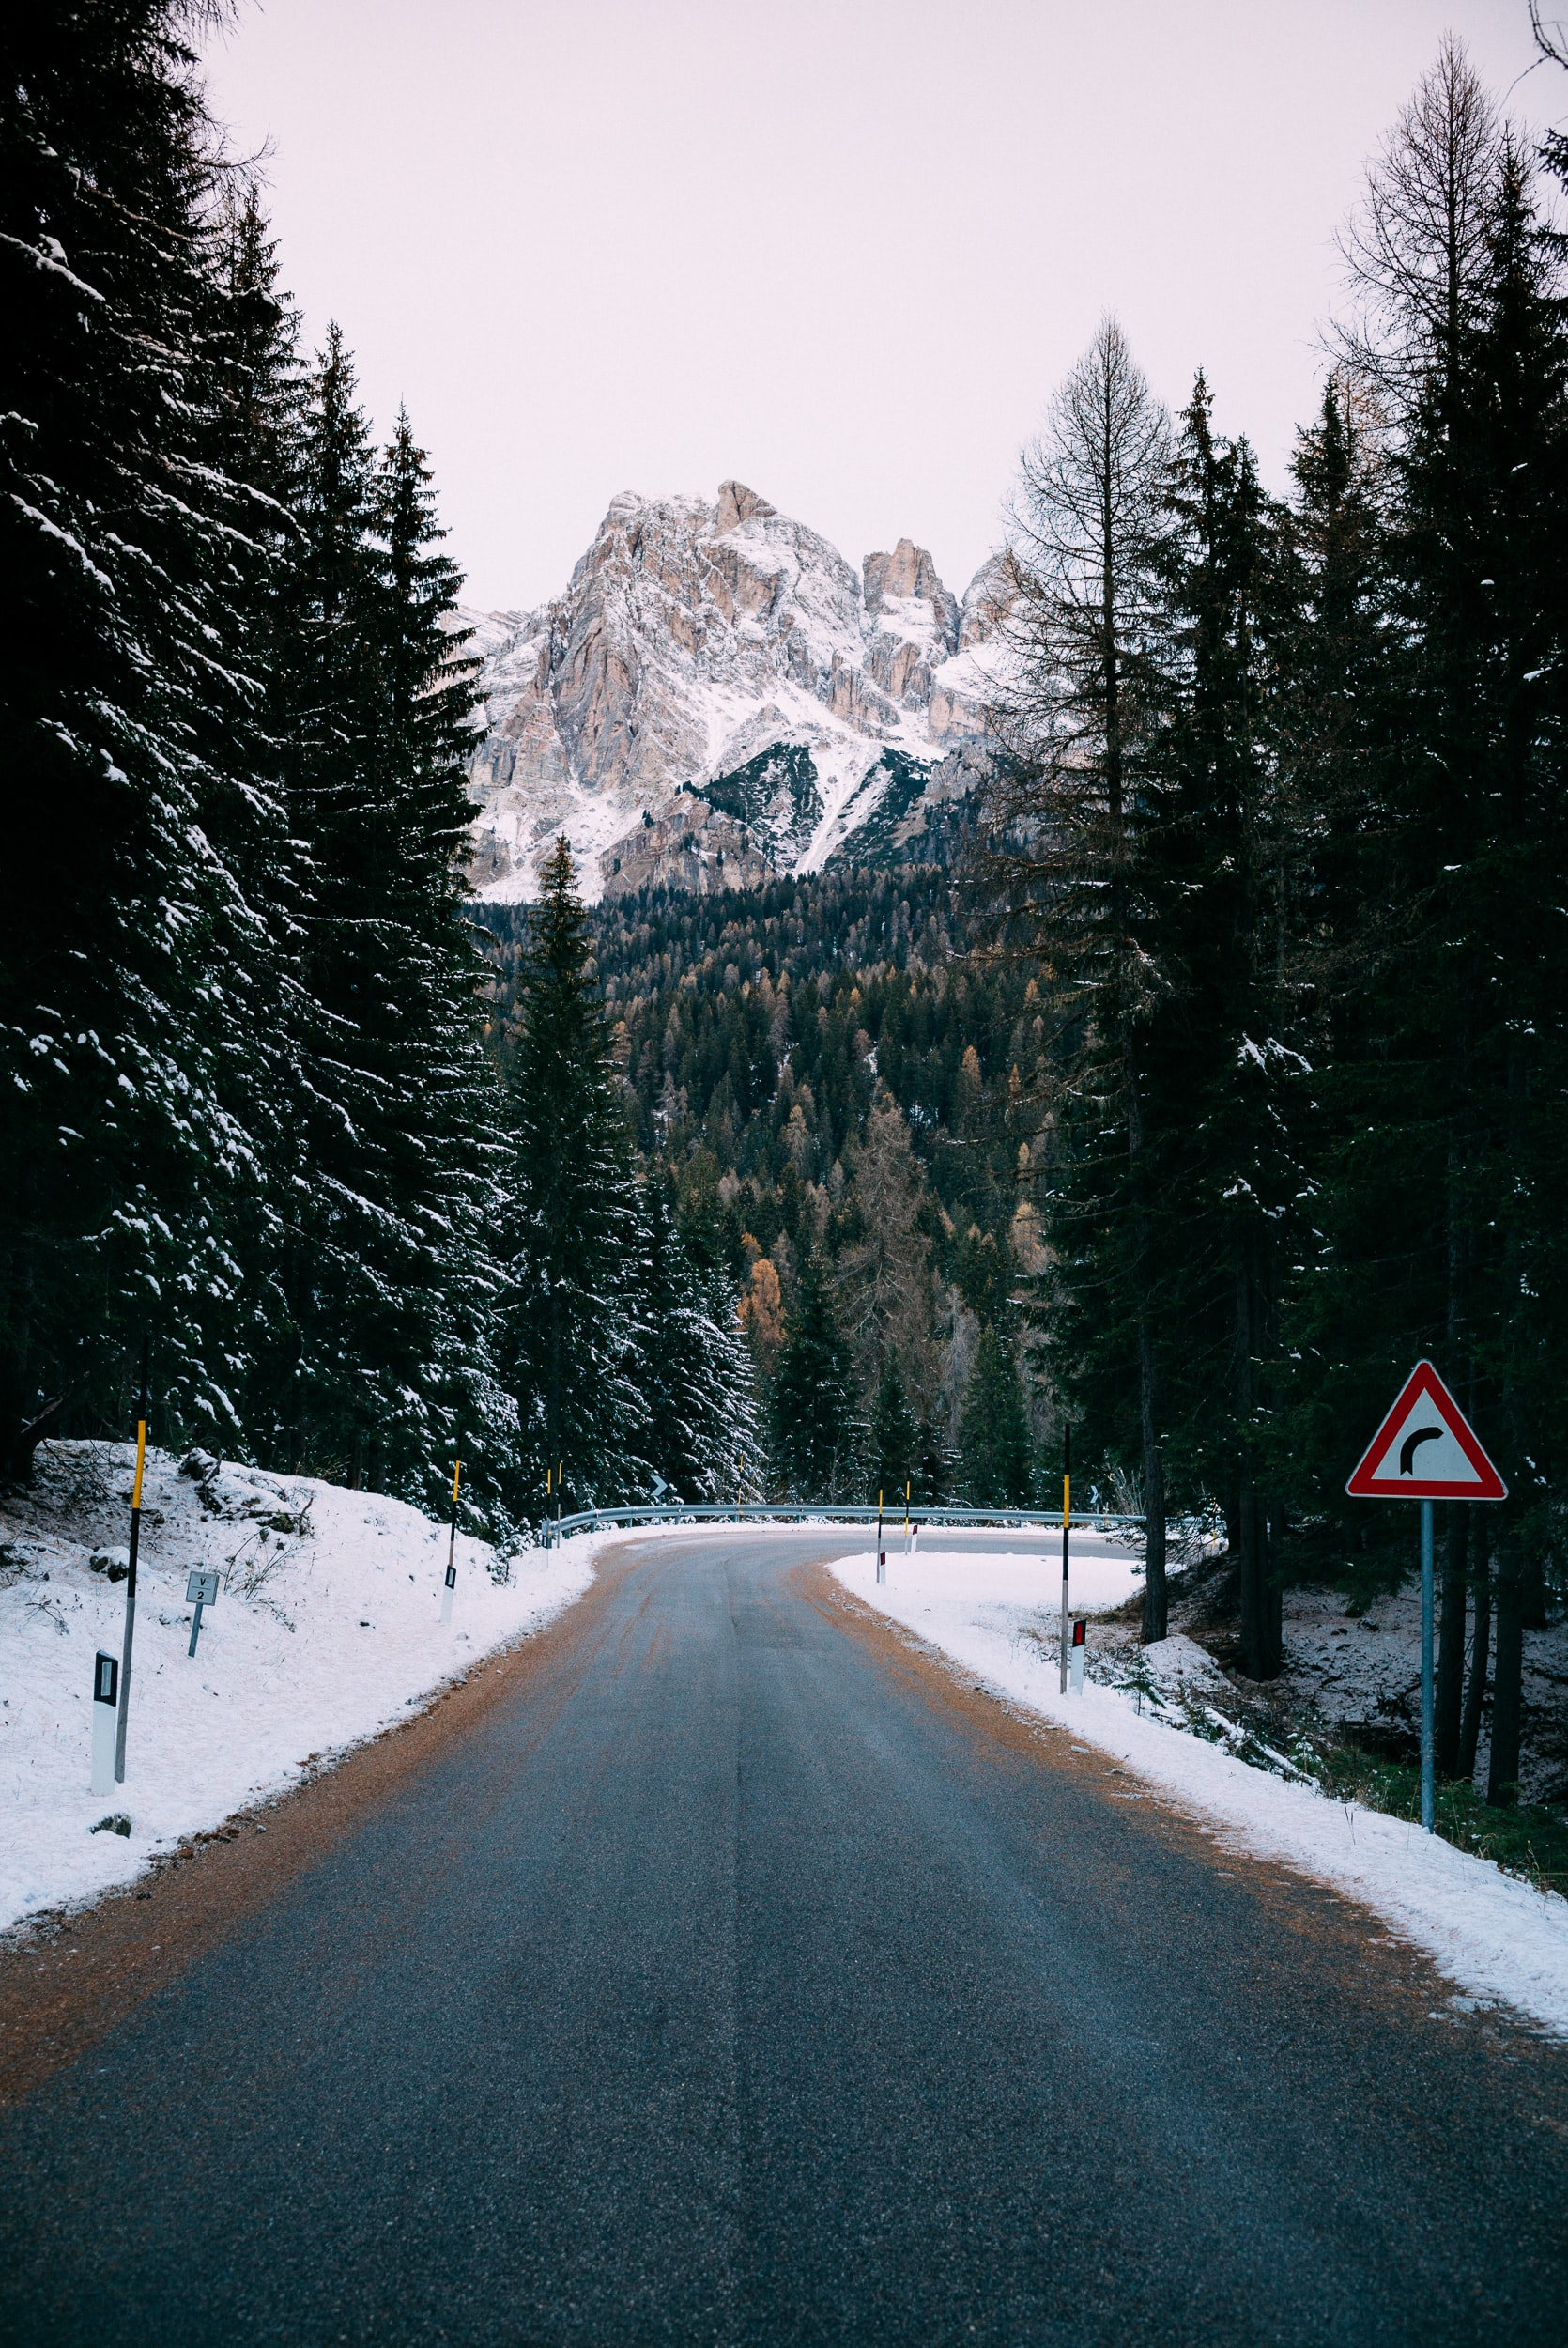 A curve in an empty road on a snowy day in the Dolomites